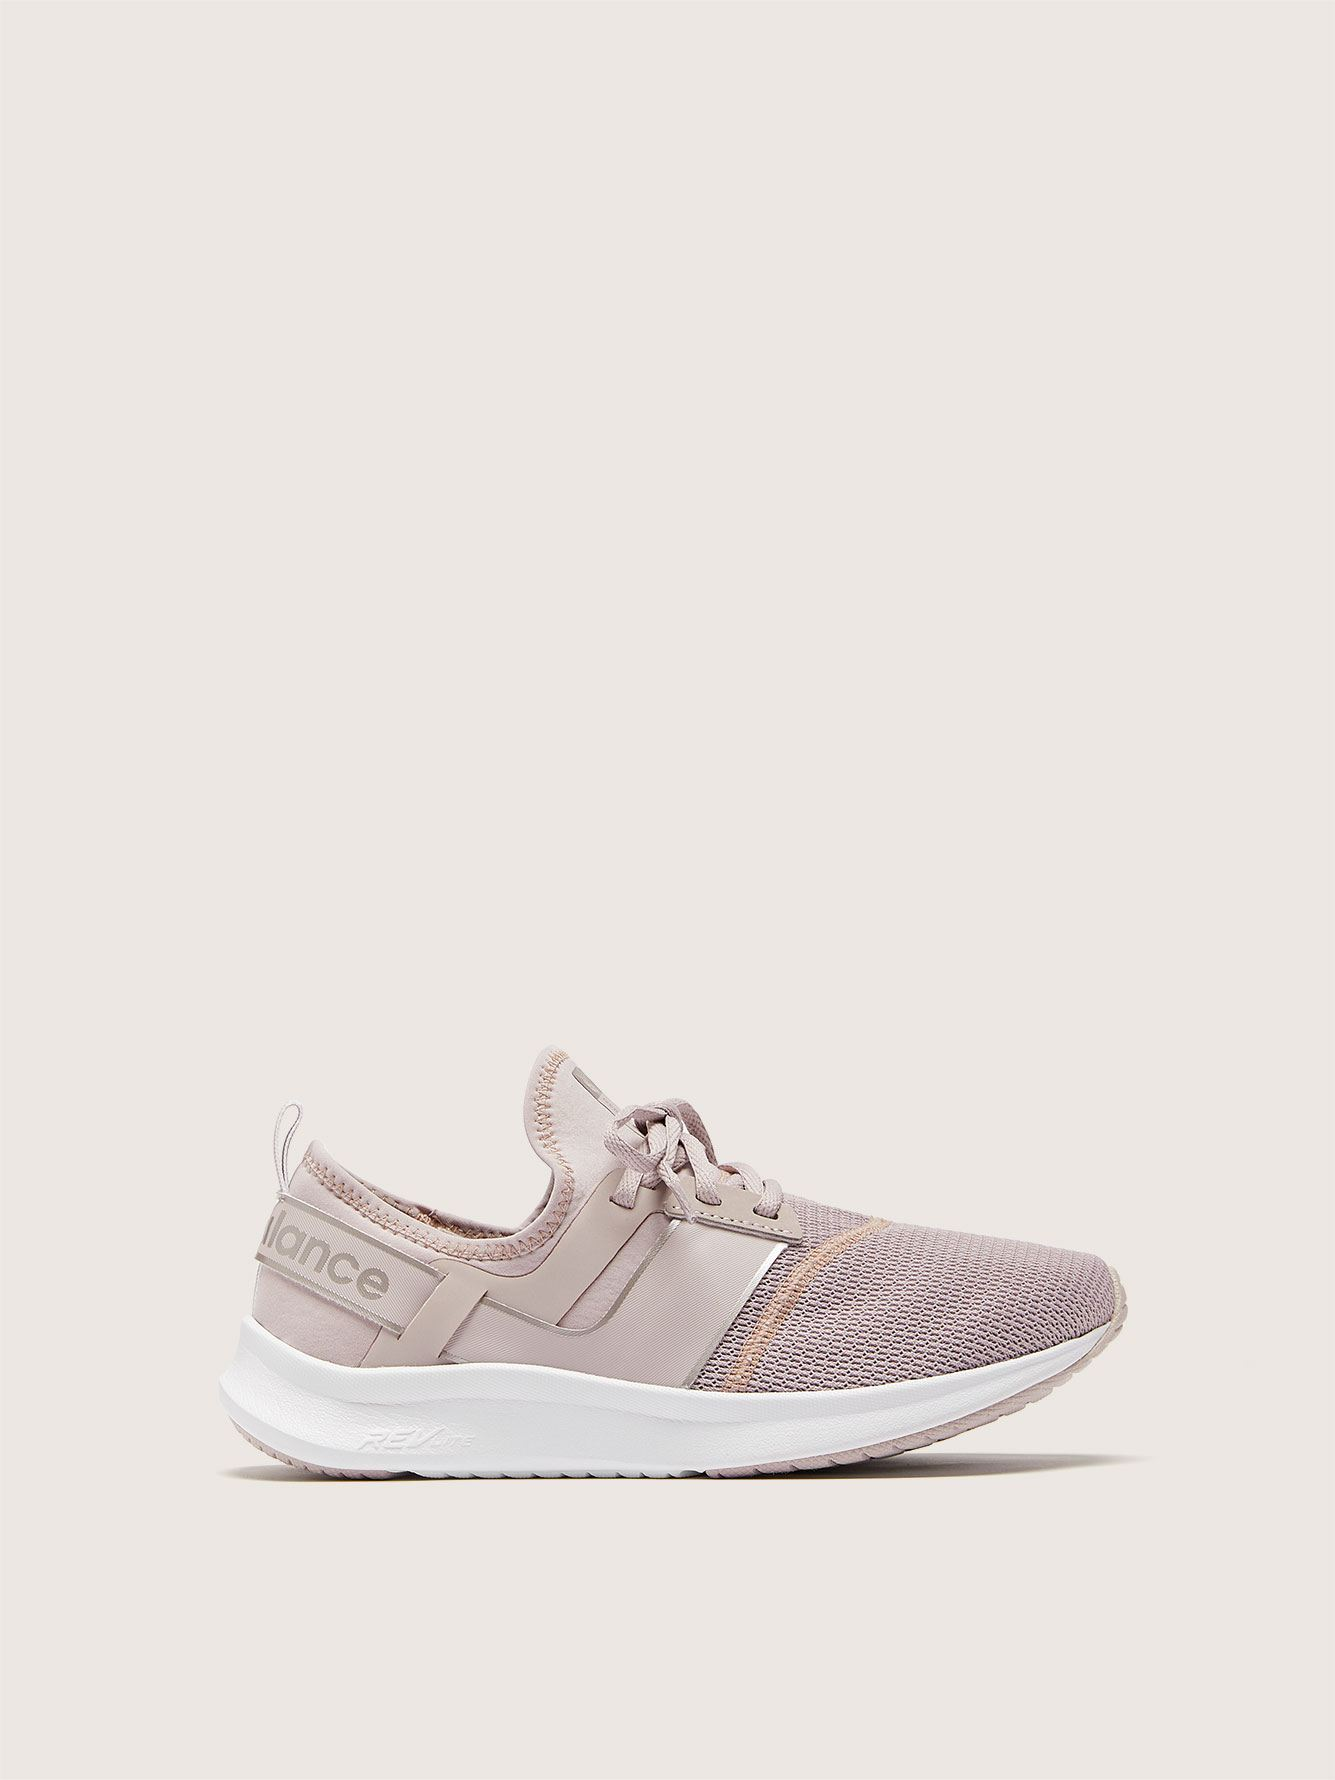 Wide Width Nergize Sneaker - New Balance